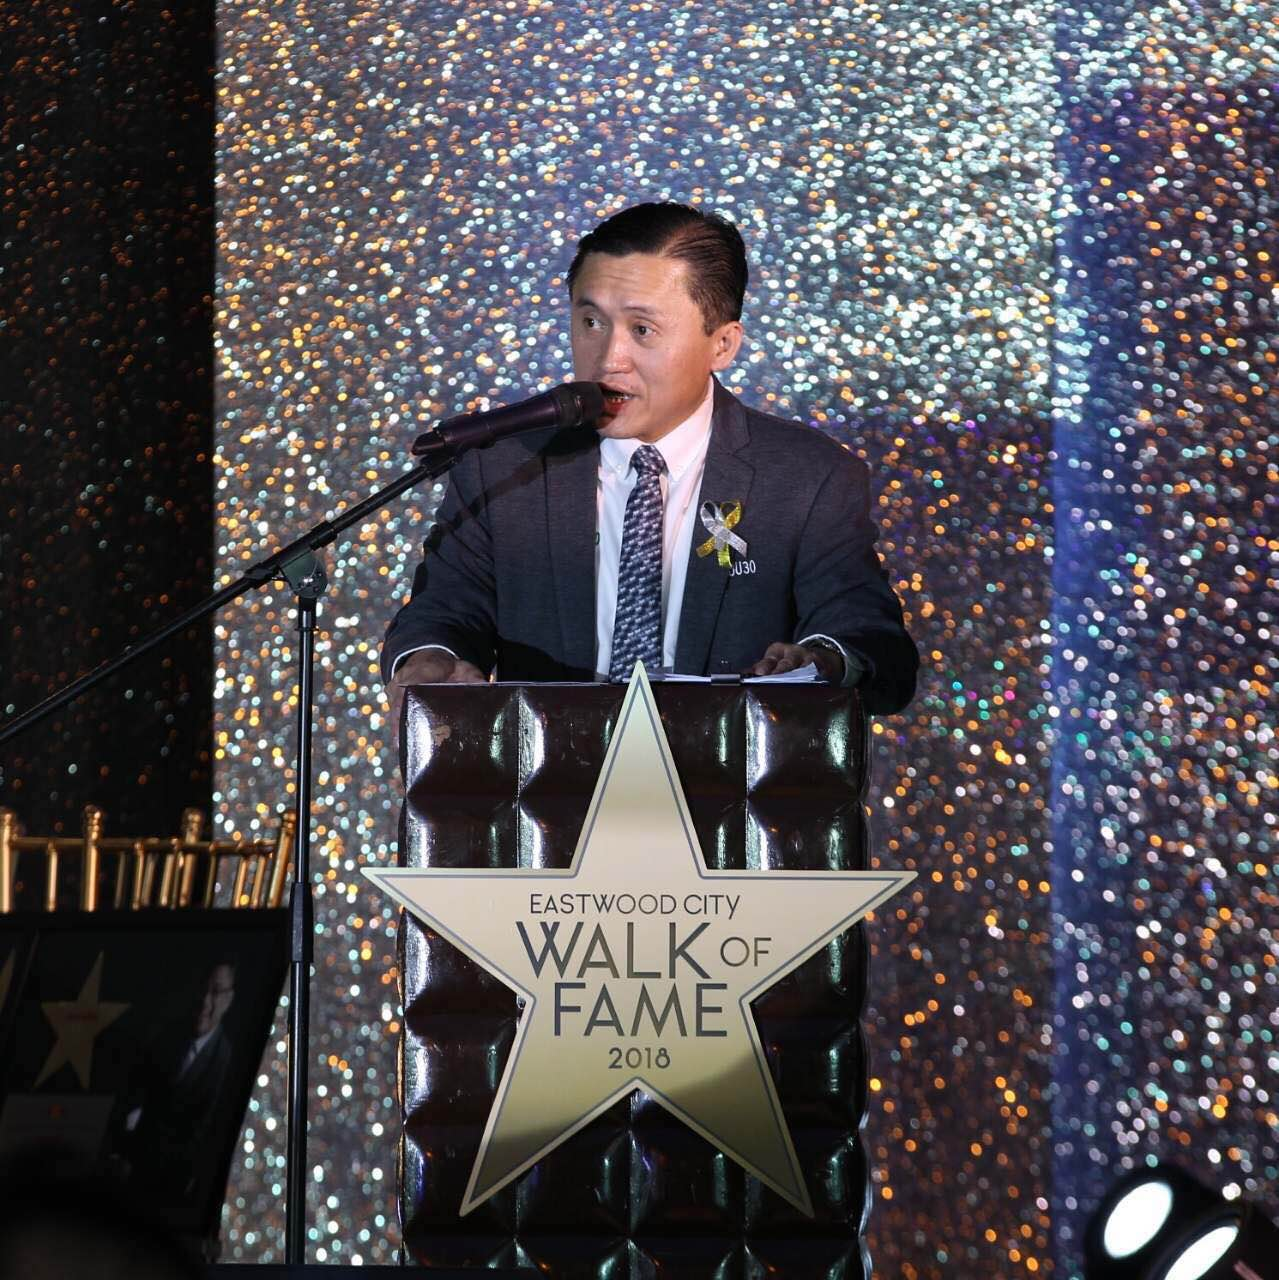 Speaking before the guests at the Walk of Fame